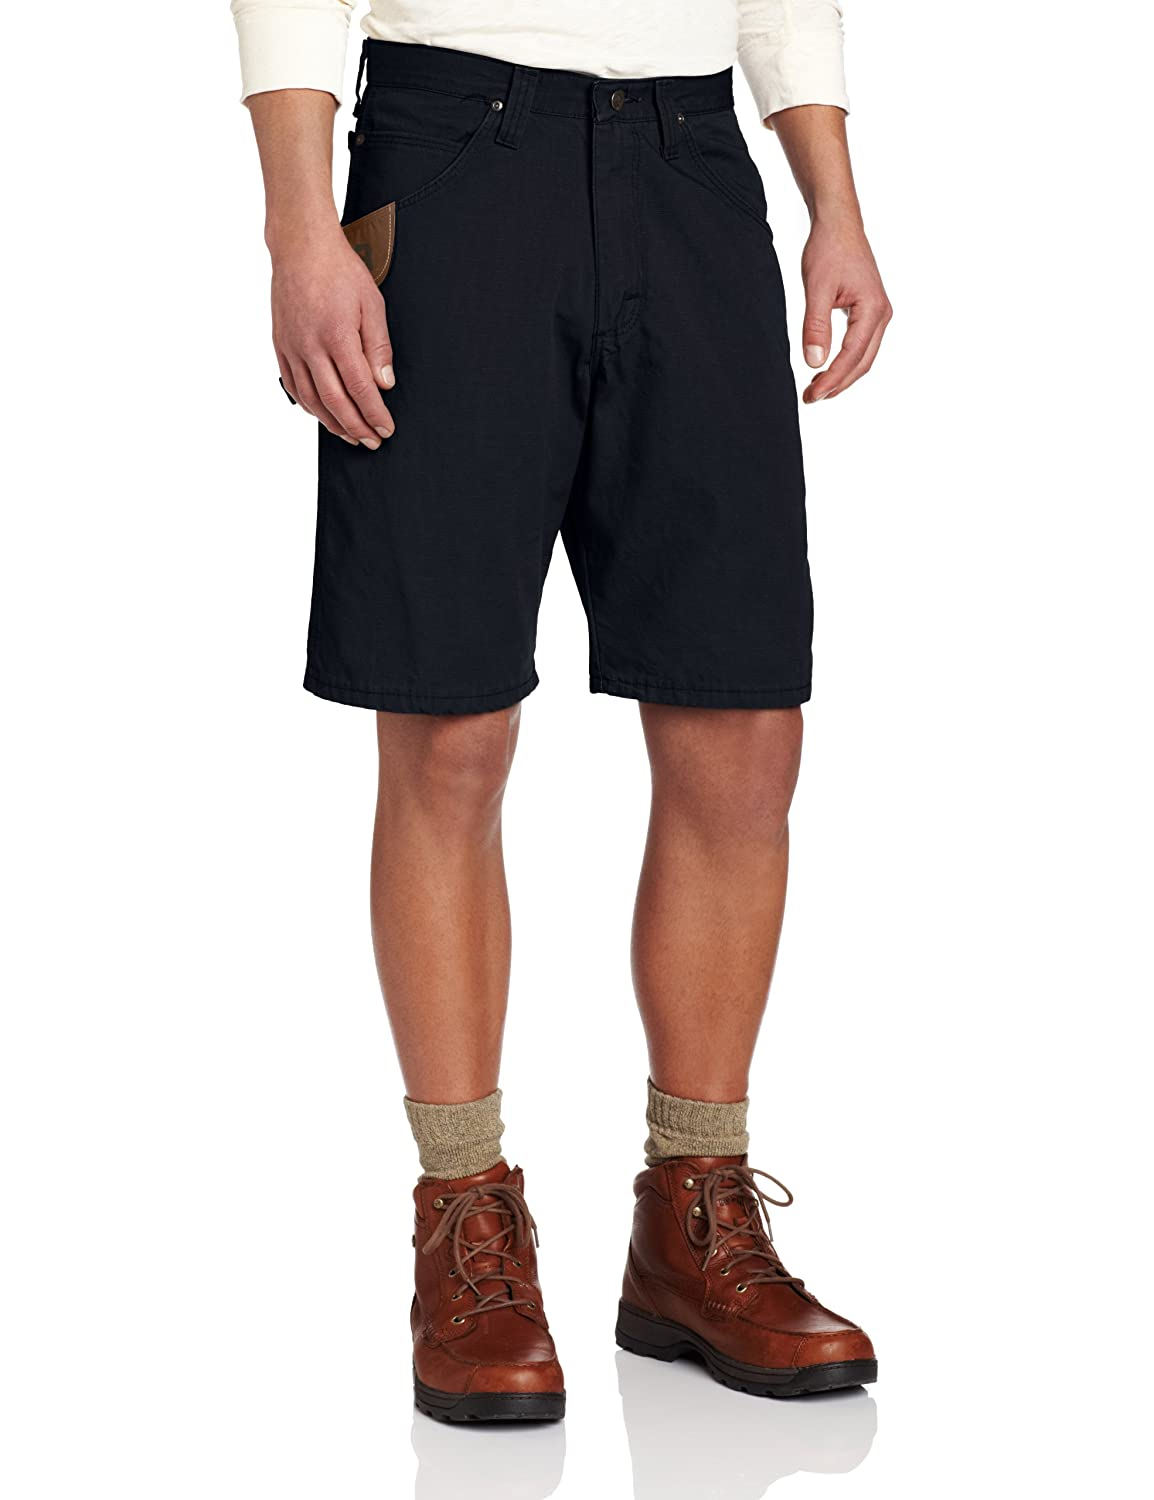 Wrangler RIGGS WORKWEAR Men's Big & Tall Carpenter Short Wrangler - MEN'S 3W320